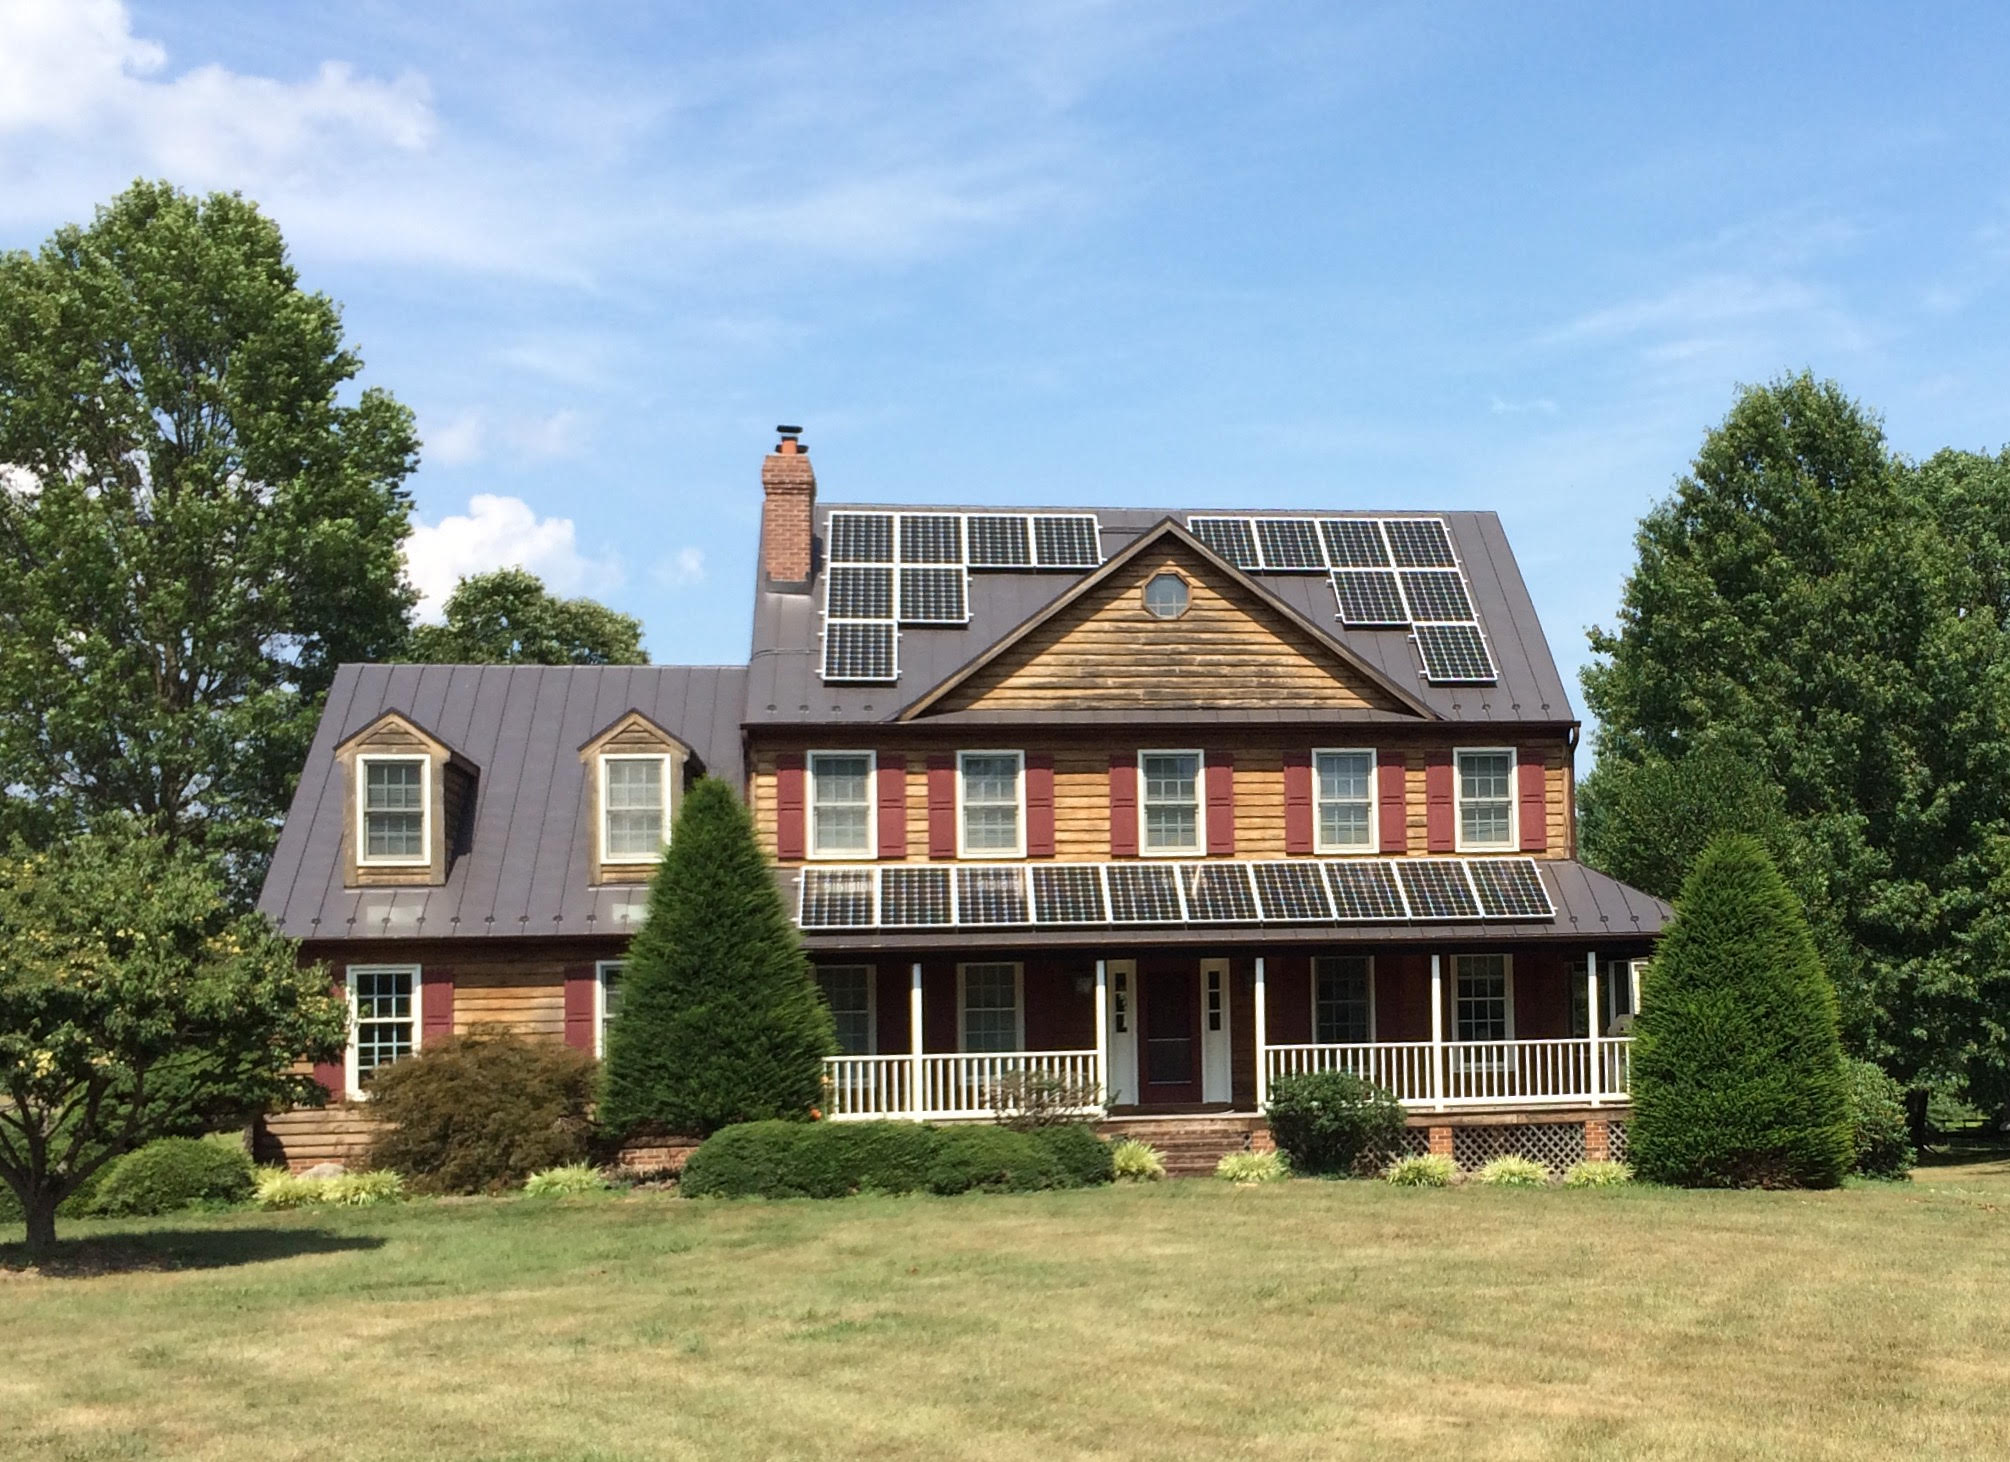 6.84kW grid-tie system in Marshall, Virginia